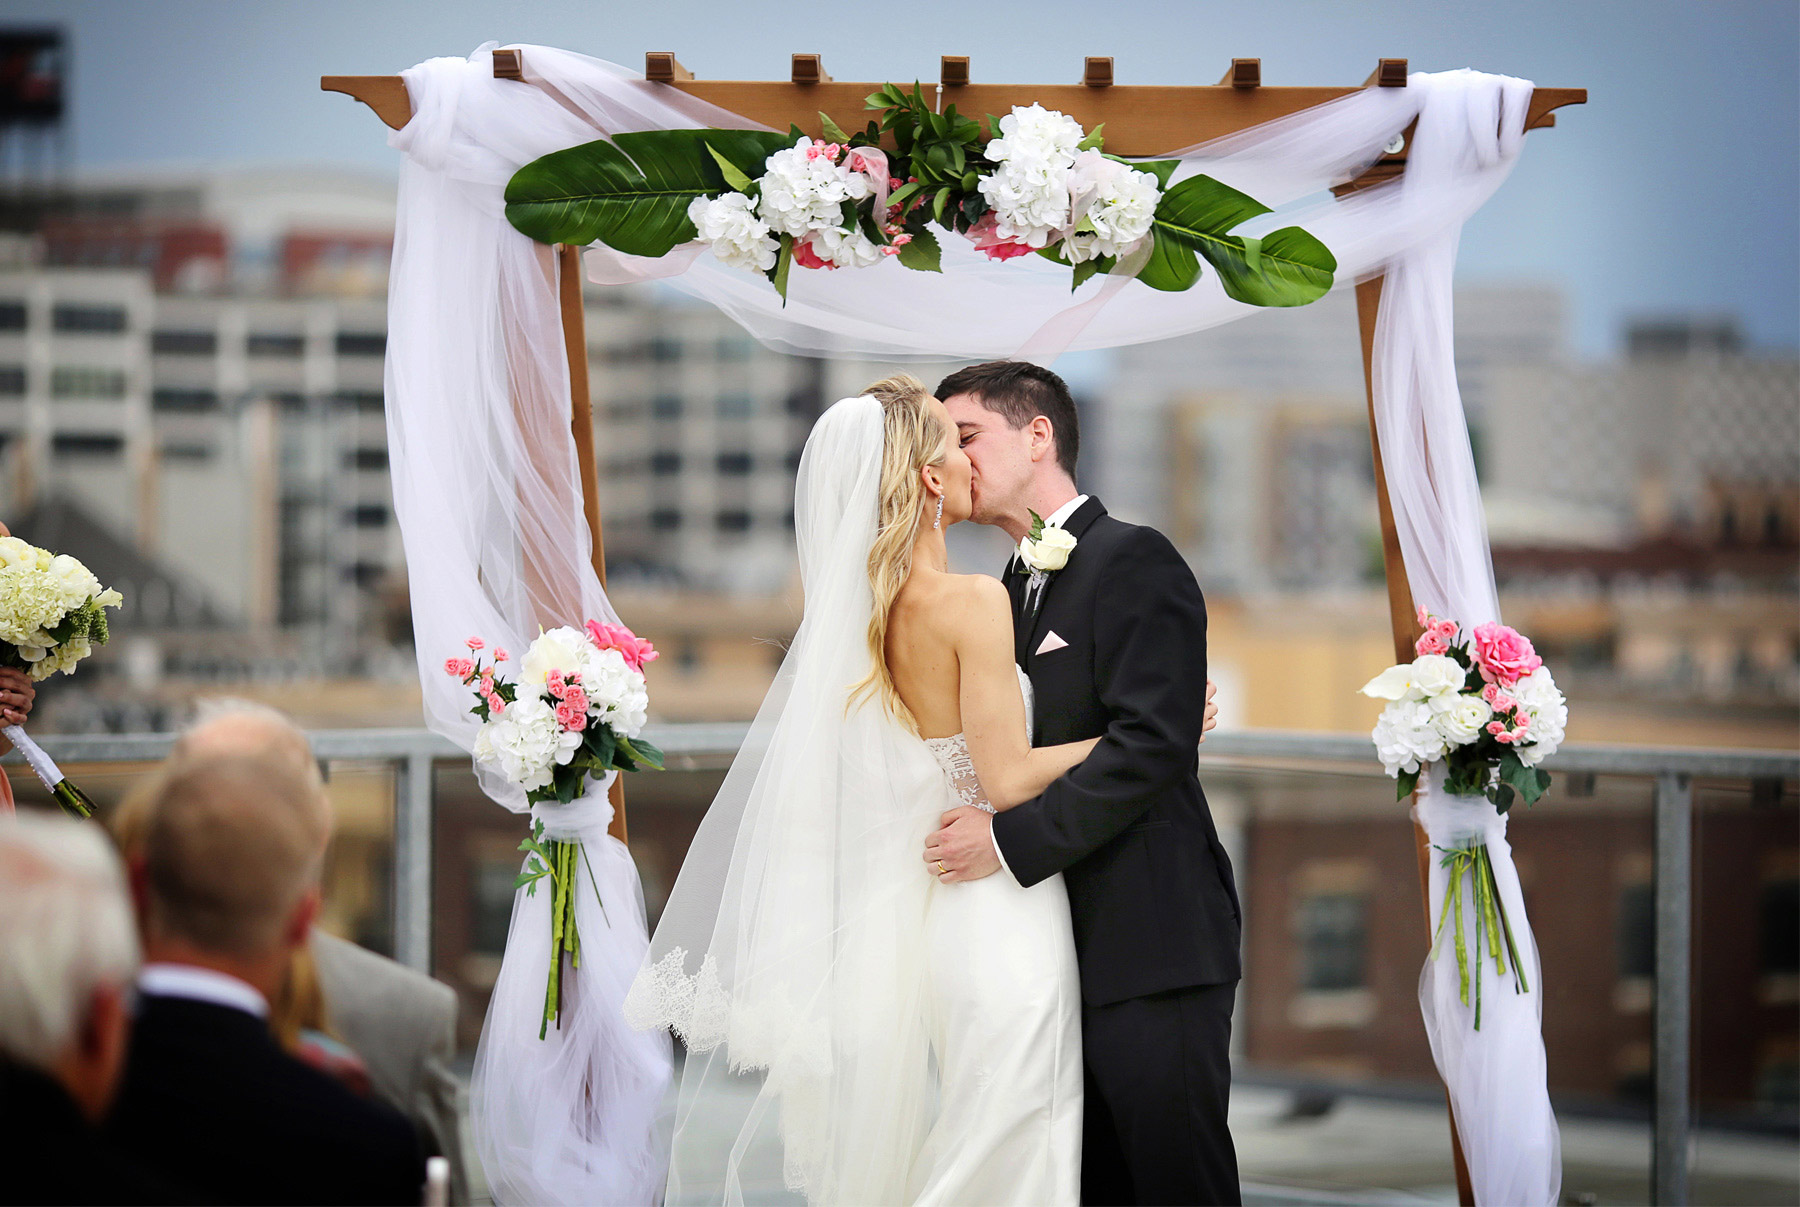 14-Saint-Paul-Minnesota-Wedding-Photographer-by-Andrew-Vick-Photography-Summer-Abulae-Ceremony-Groom-Bride-Dress-Kiss-Embrace-Laura-and-Tim.jpg